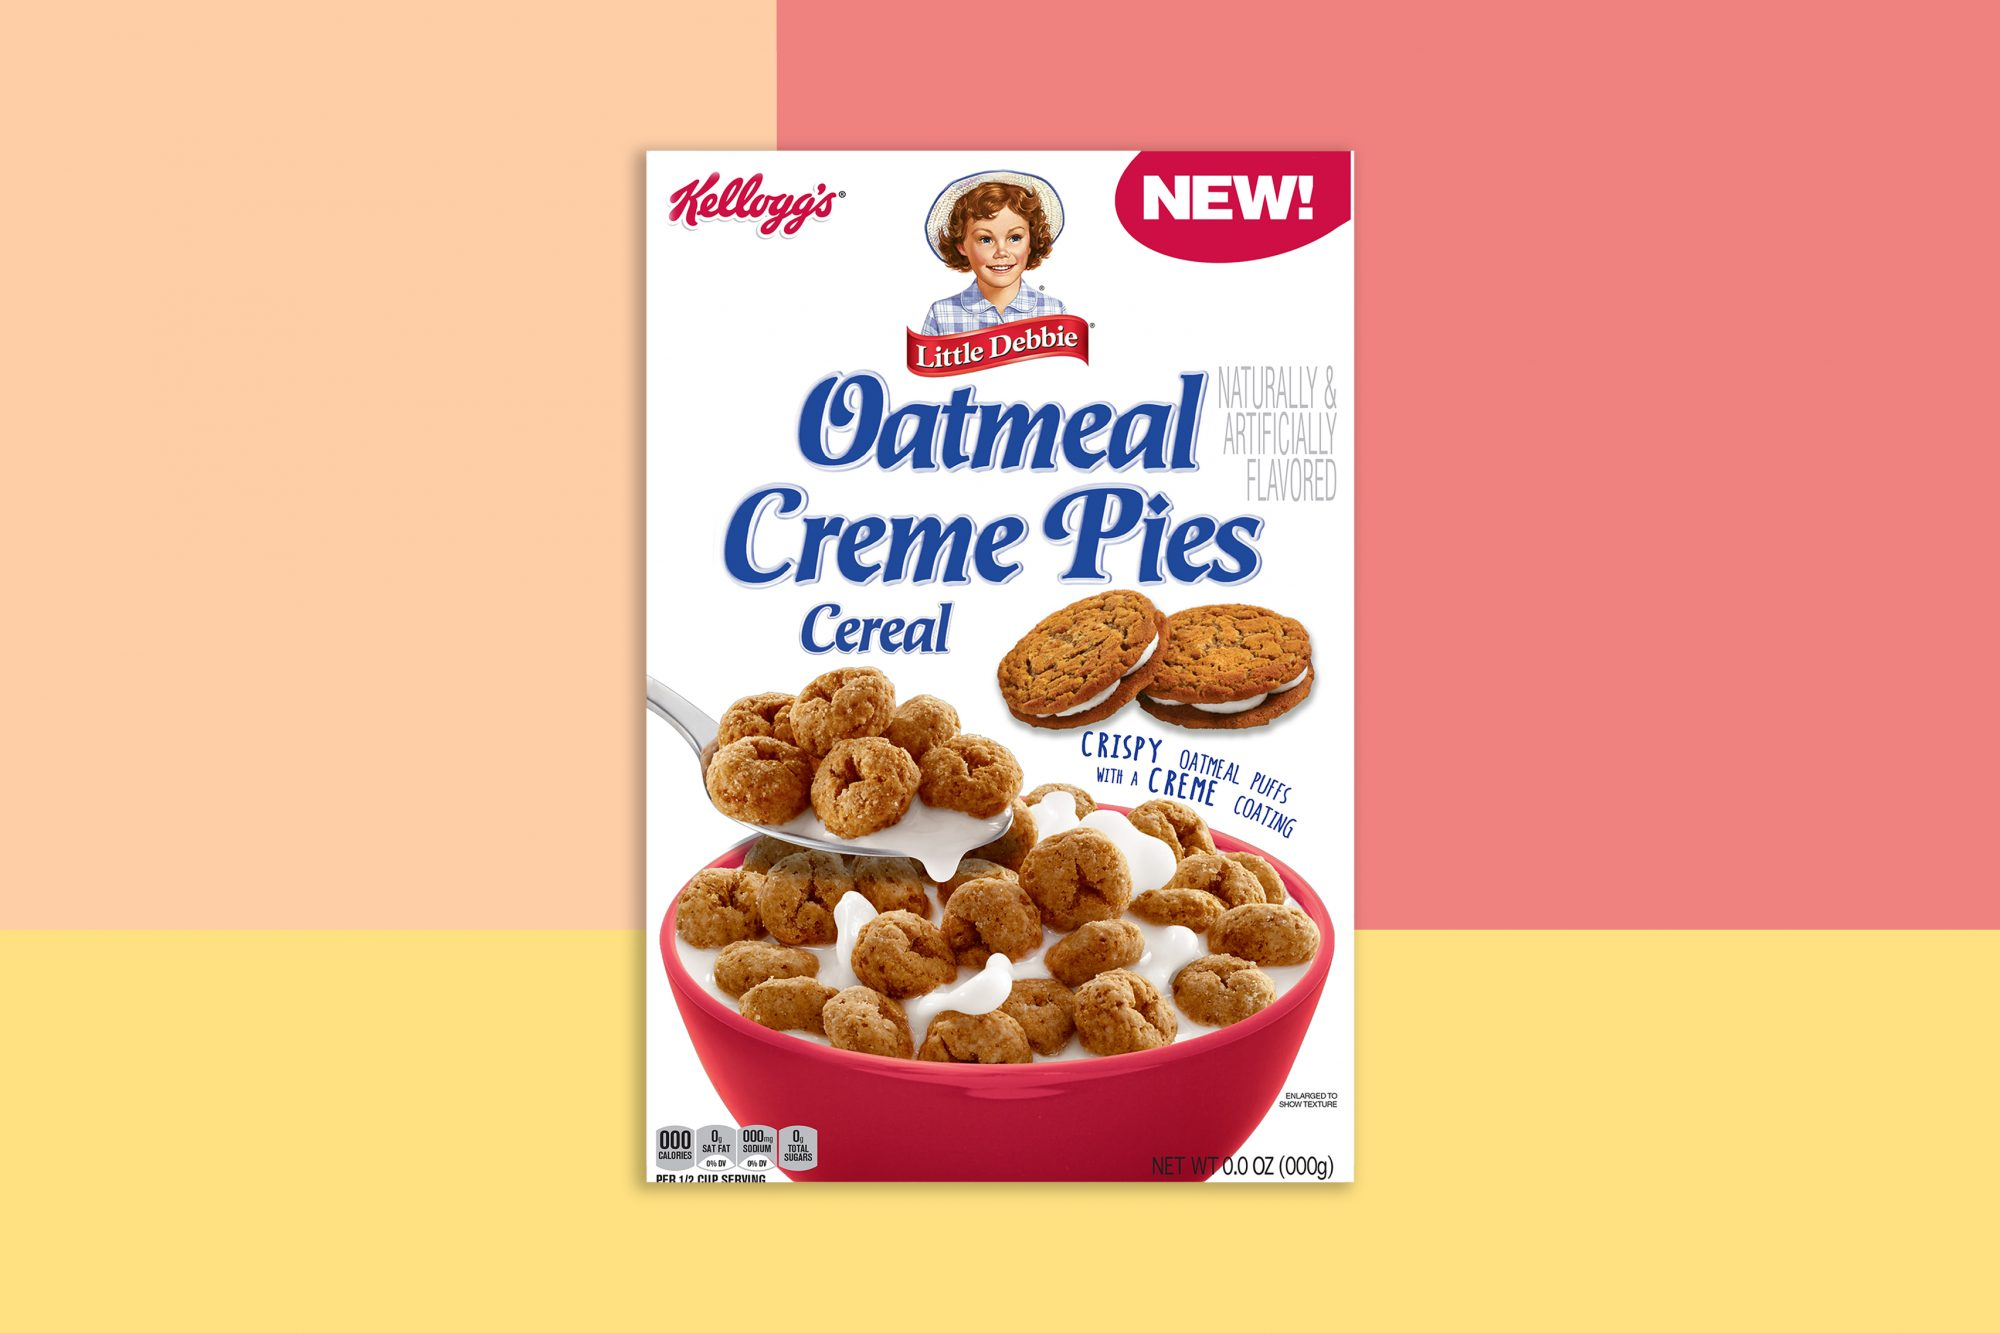 Little Debbie Oatmeal Creme Pies Cereal